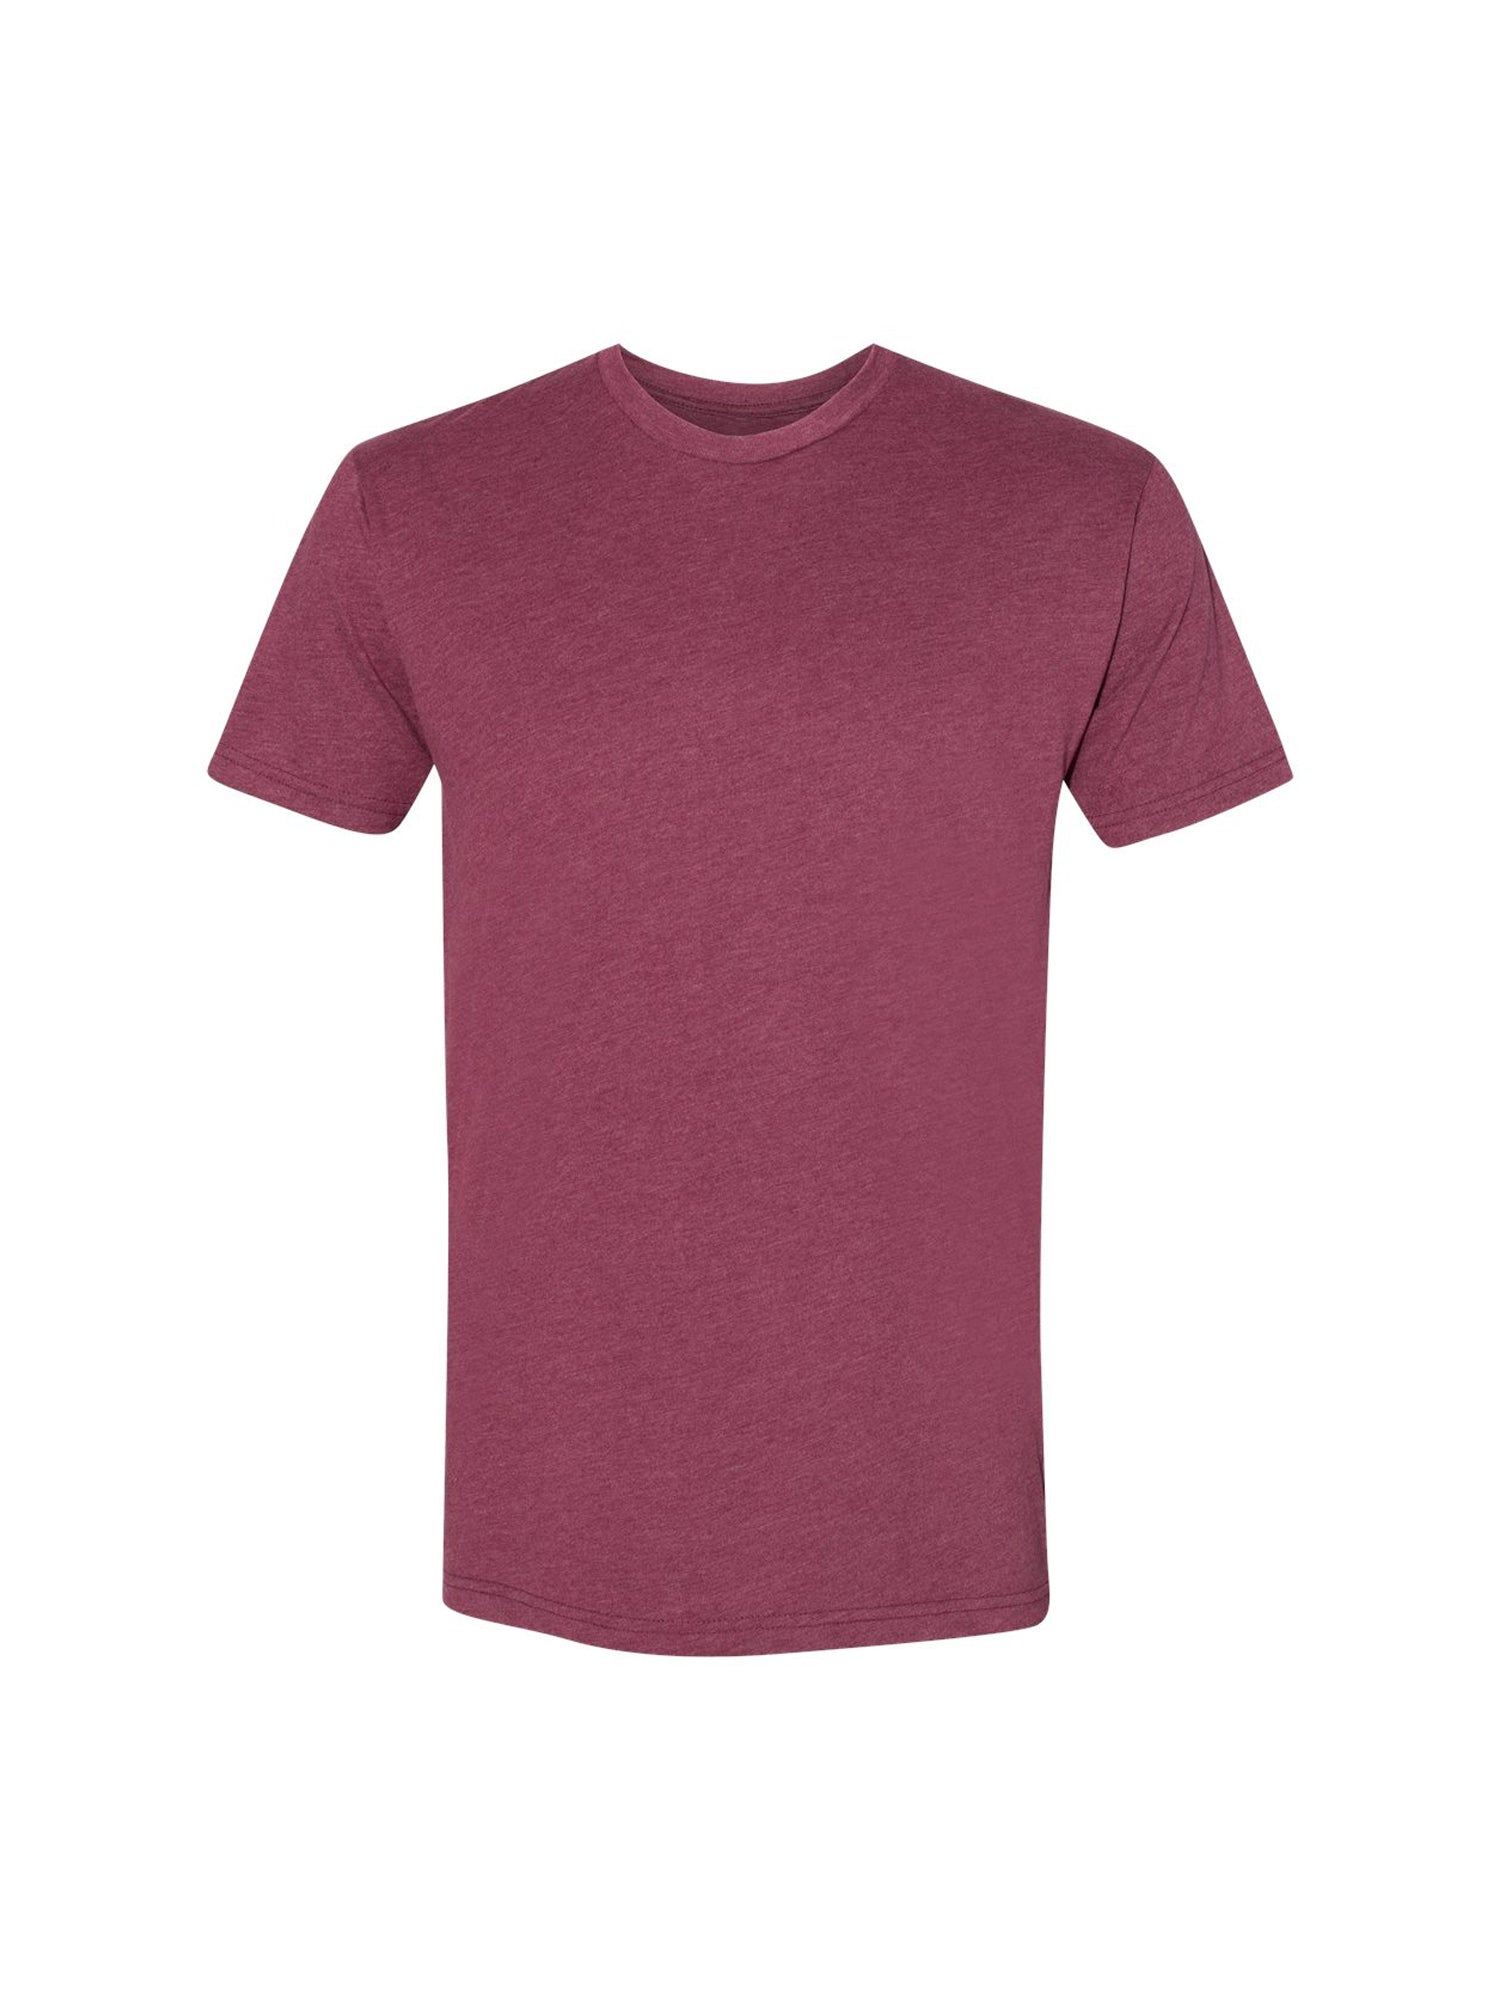 SUEDED CREW - HEATHER MAROON - Tankfarm & Co.